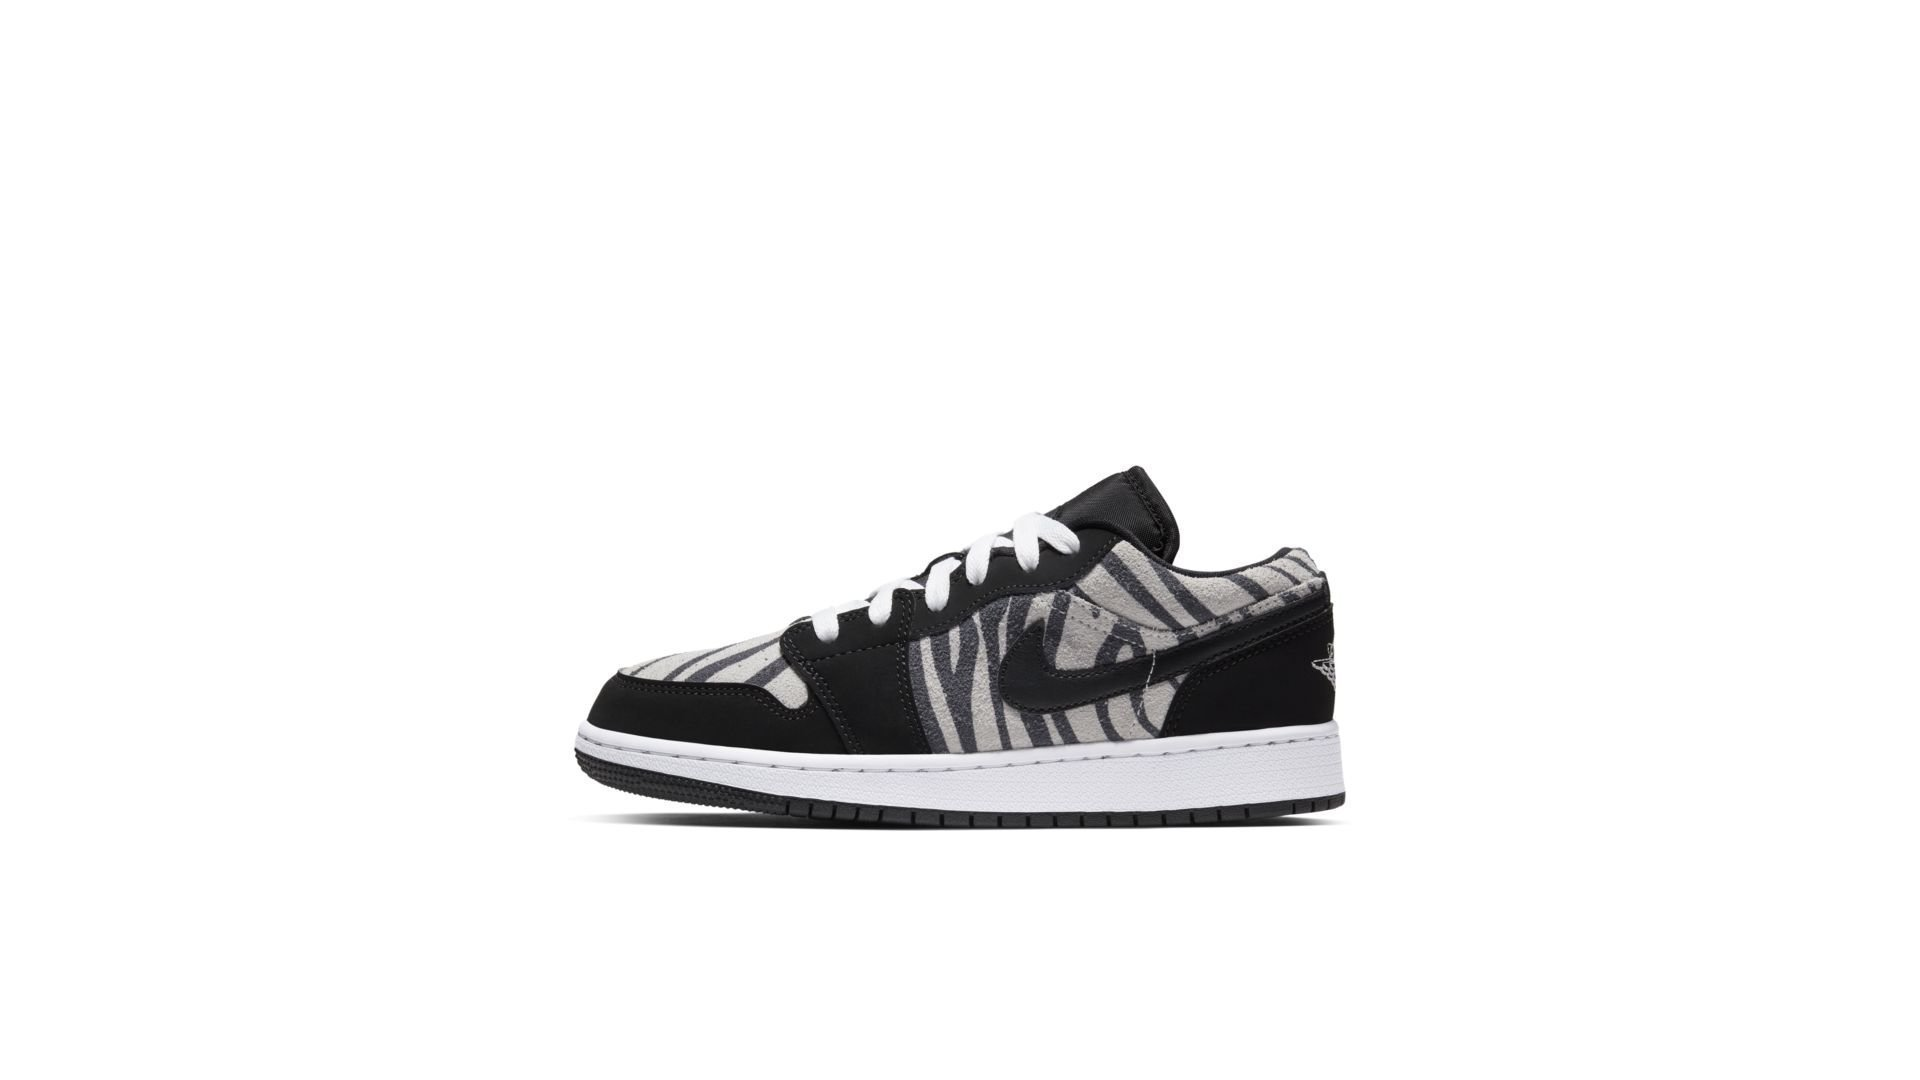 Jordan 1 Low Zebra (GS) (553560-057)